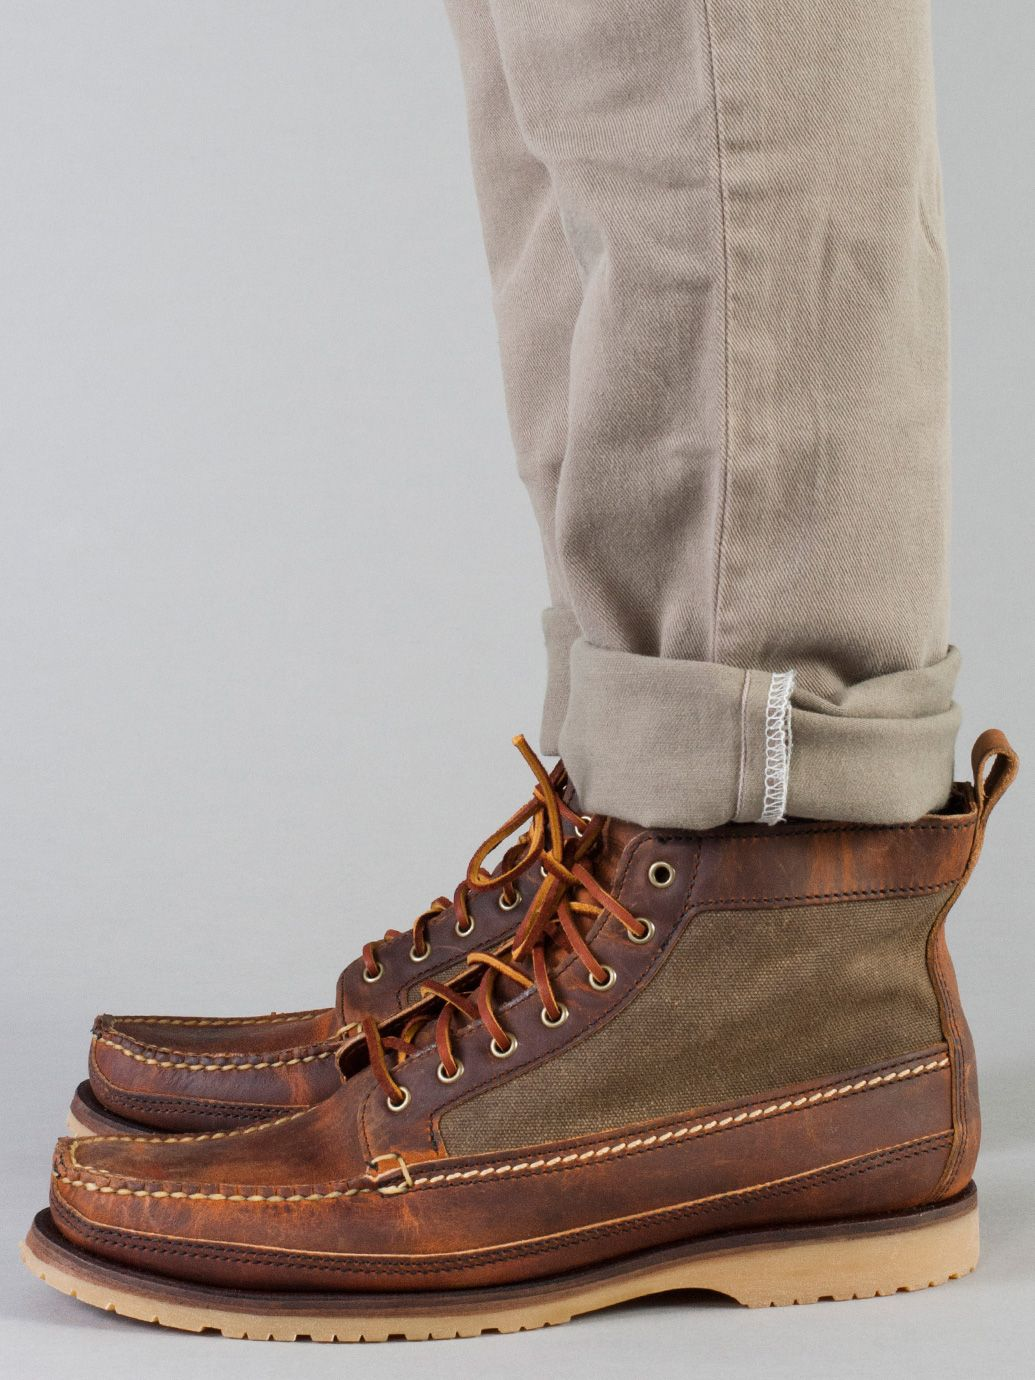 American Apparel - Red Wing Wabasha Boot | Mens Fashion ...